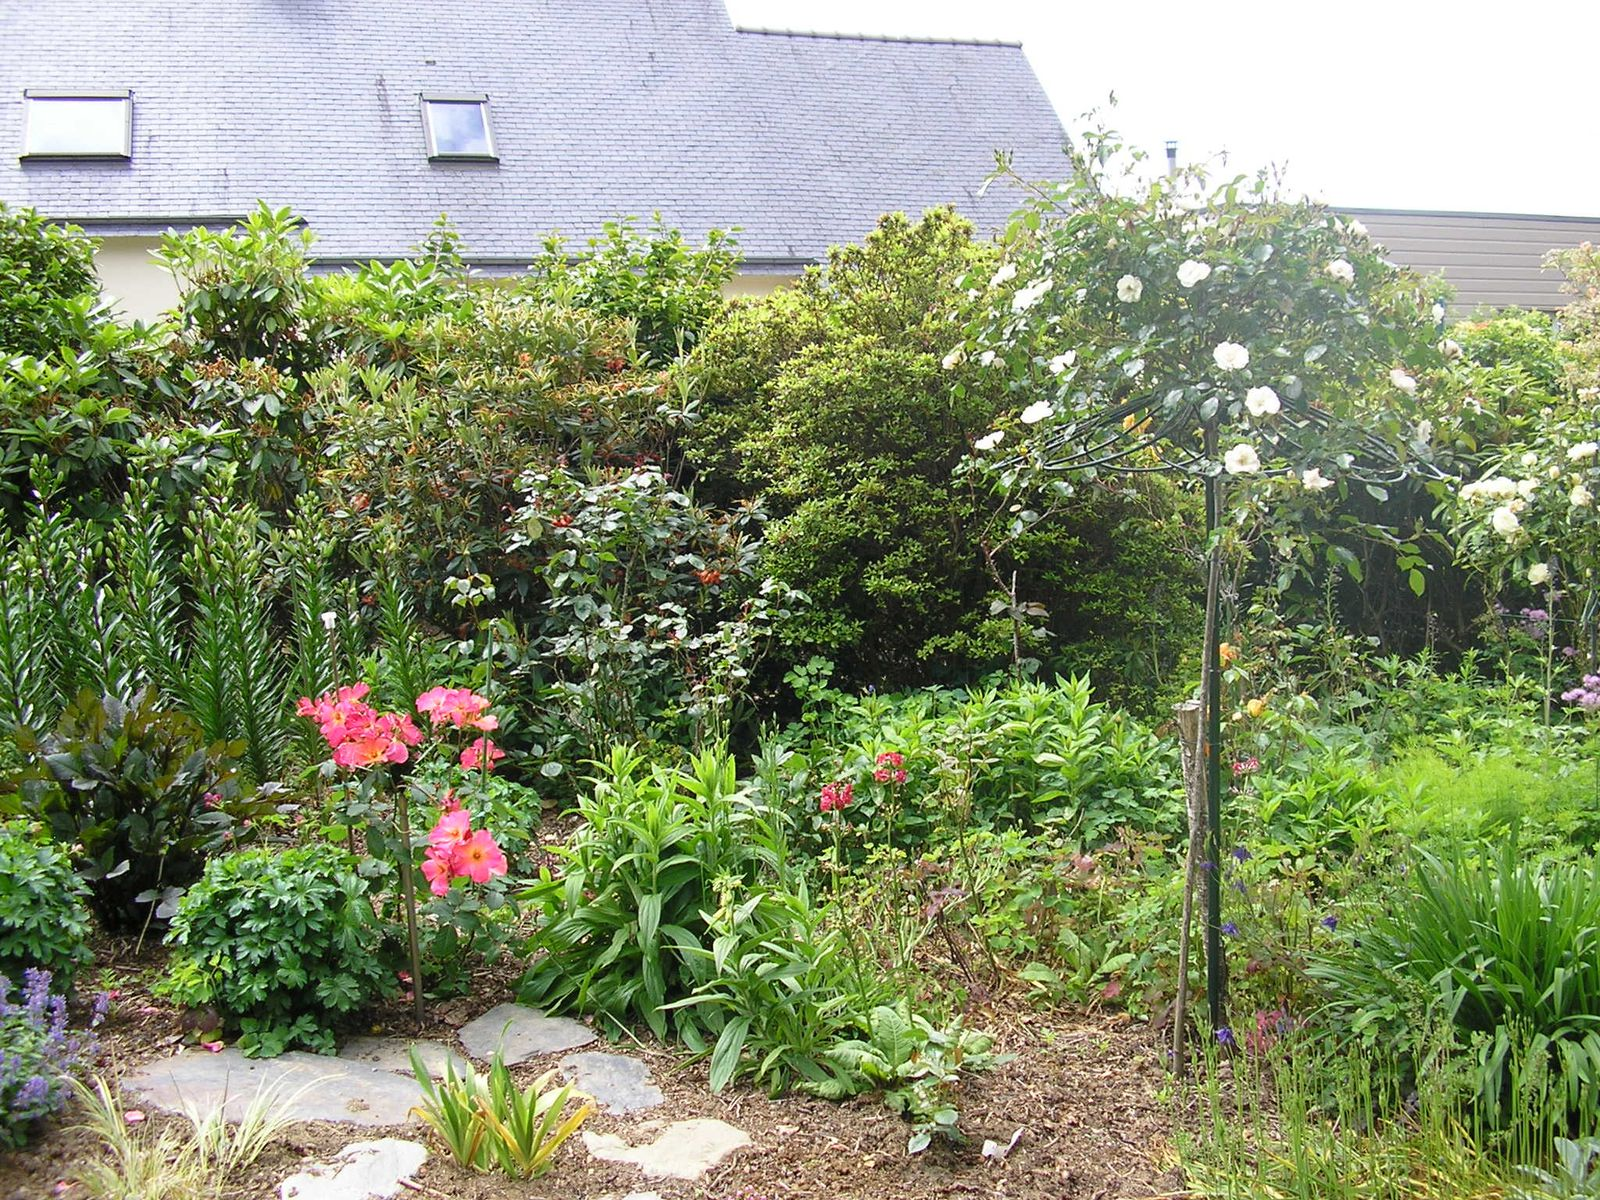 Le jardin de mes parents en juin